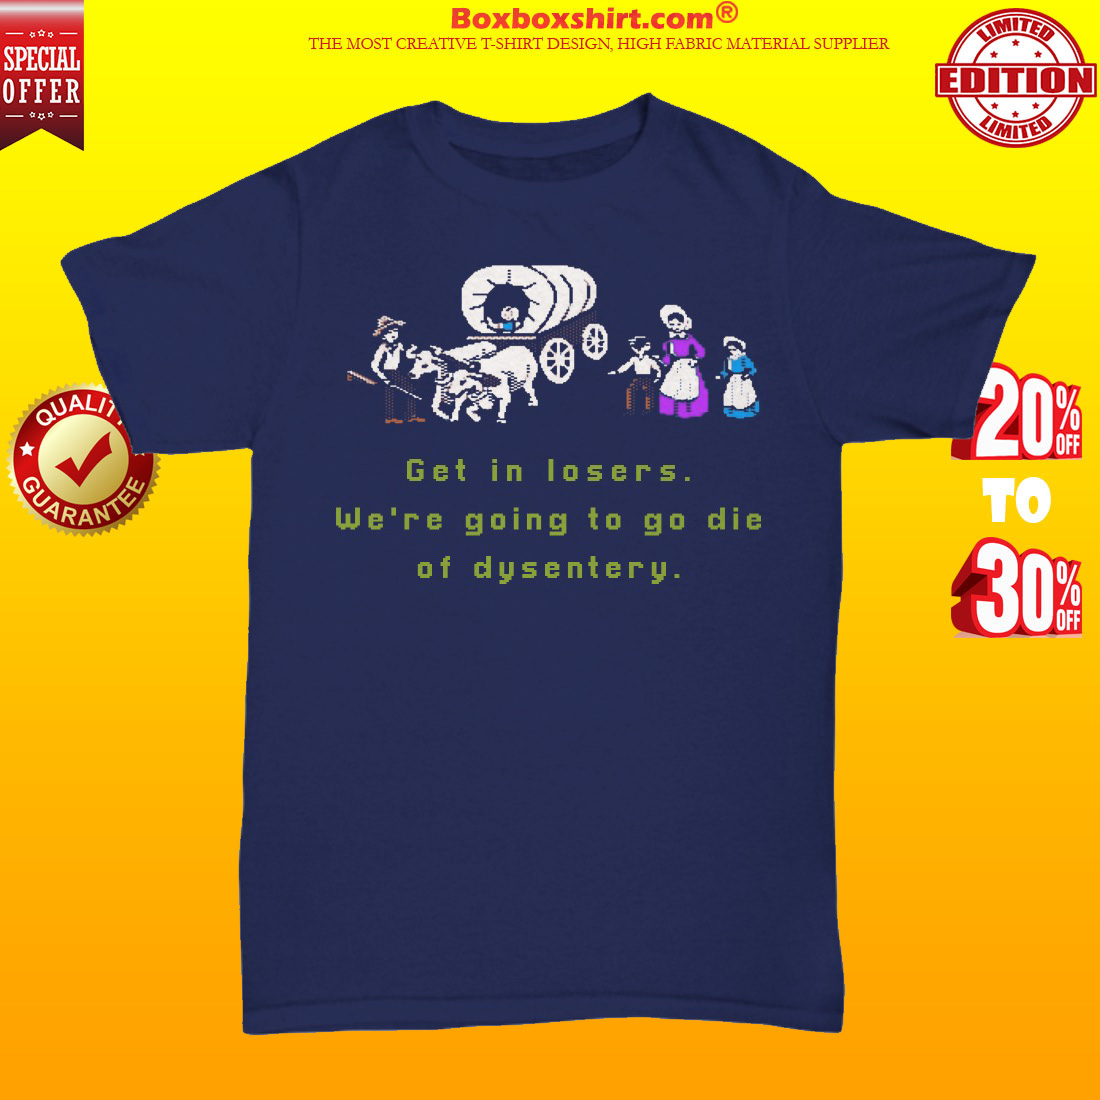 Get in losers we are going to go die of dysentery unisex tee shirt